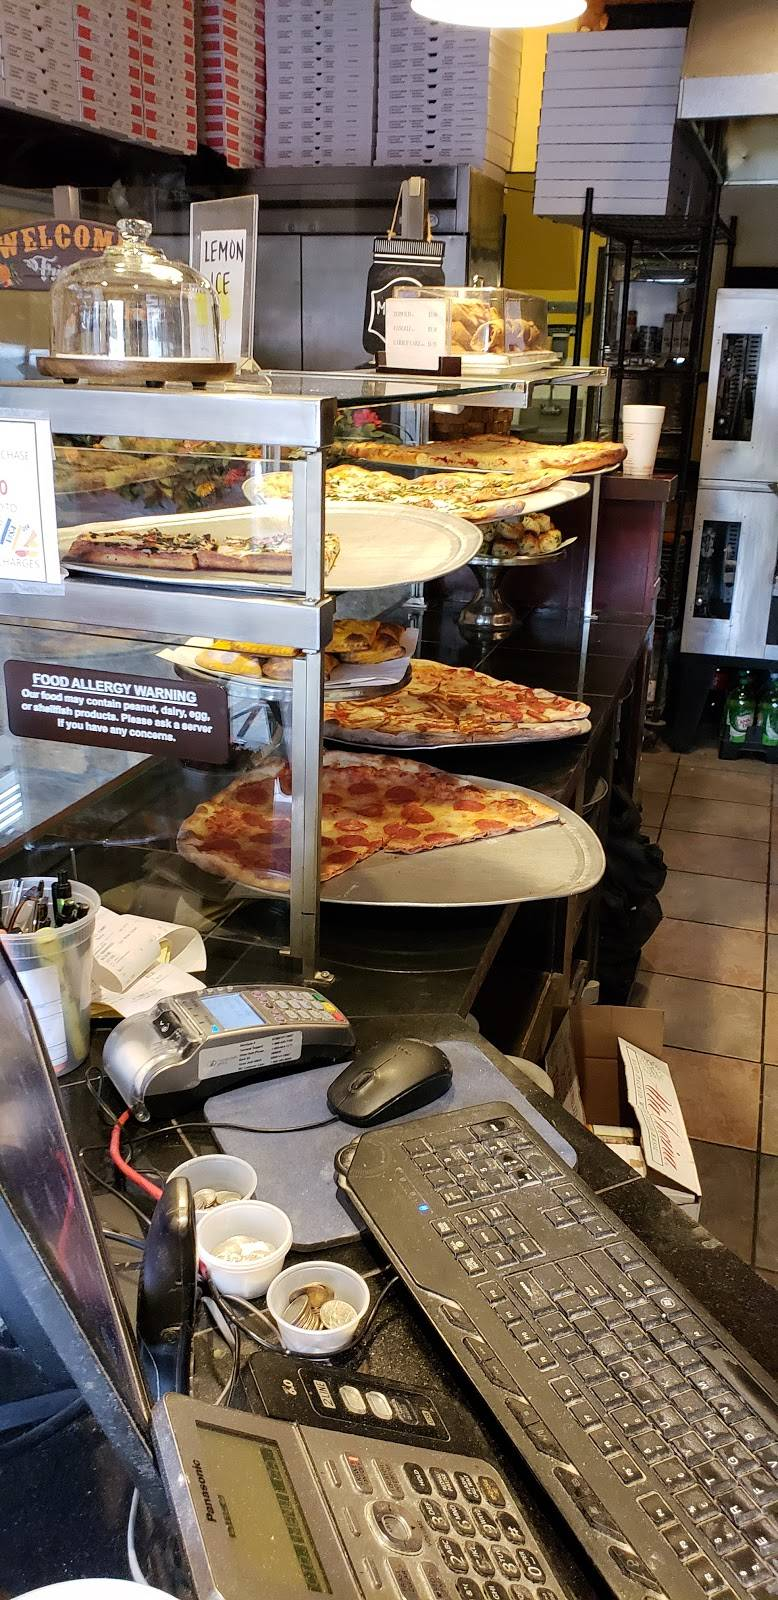 Franks Pizza | meal delivery | 272 Old River Rd, Edgewater, NJ 07020, USA | 2019415001 OR +1 201-941-5001